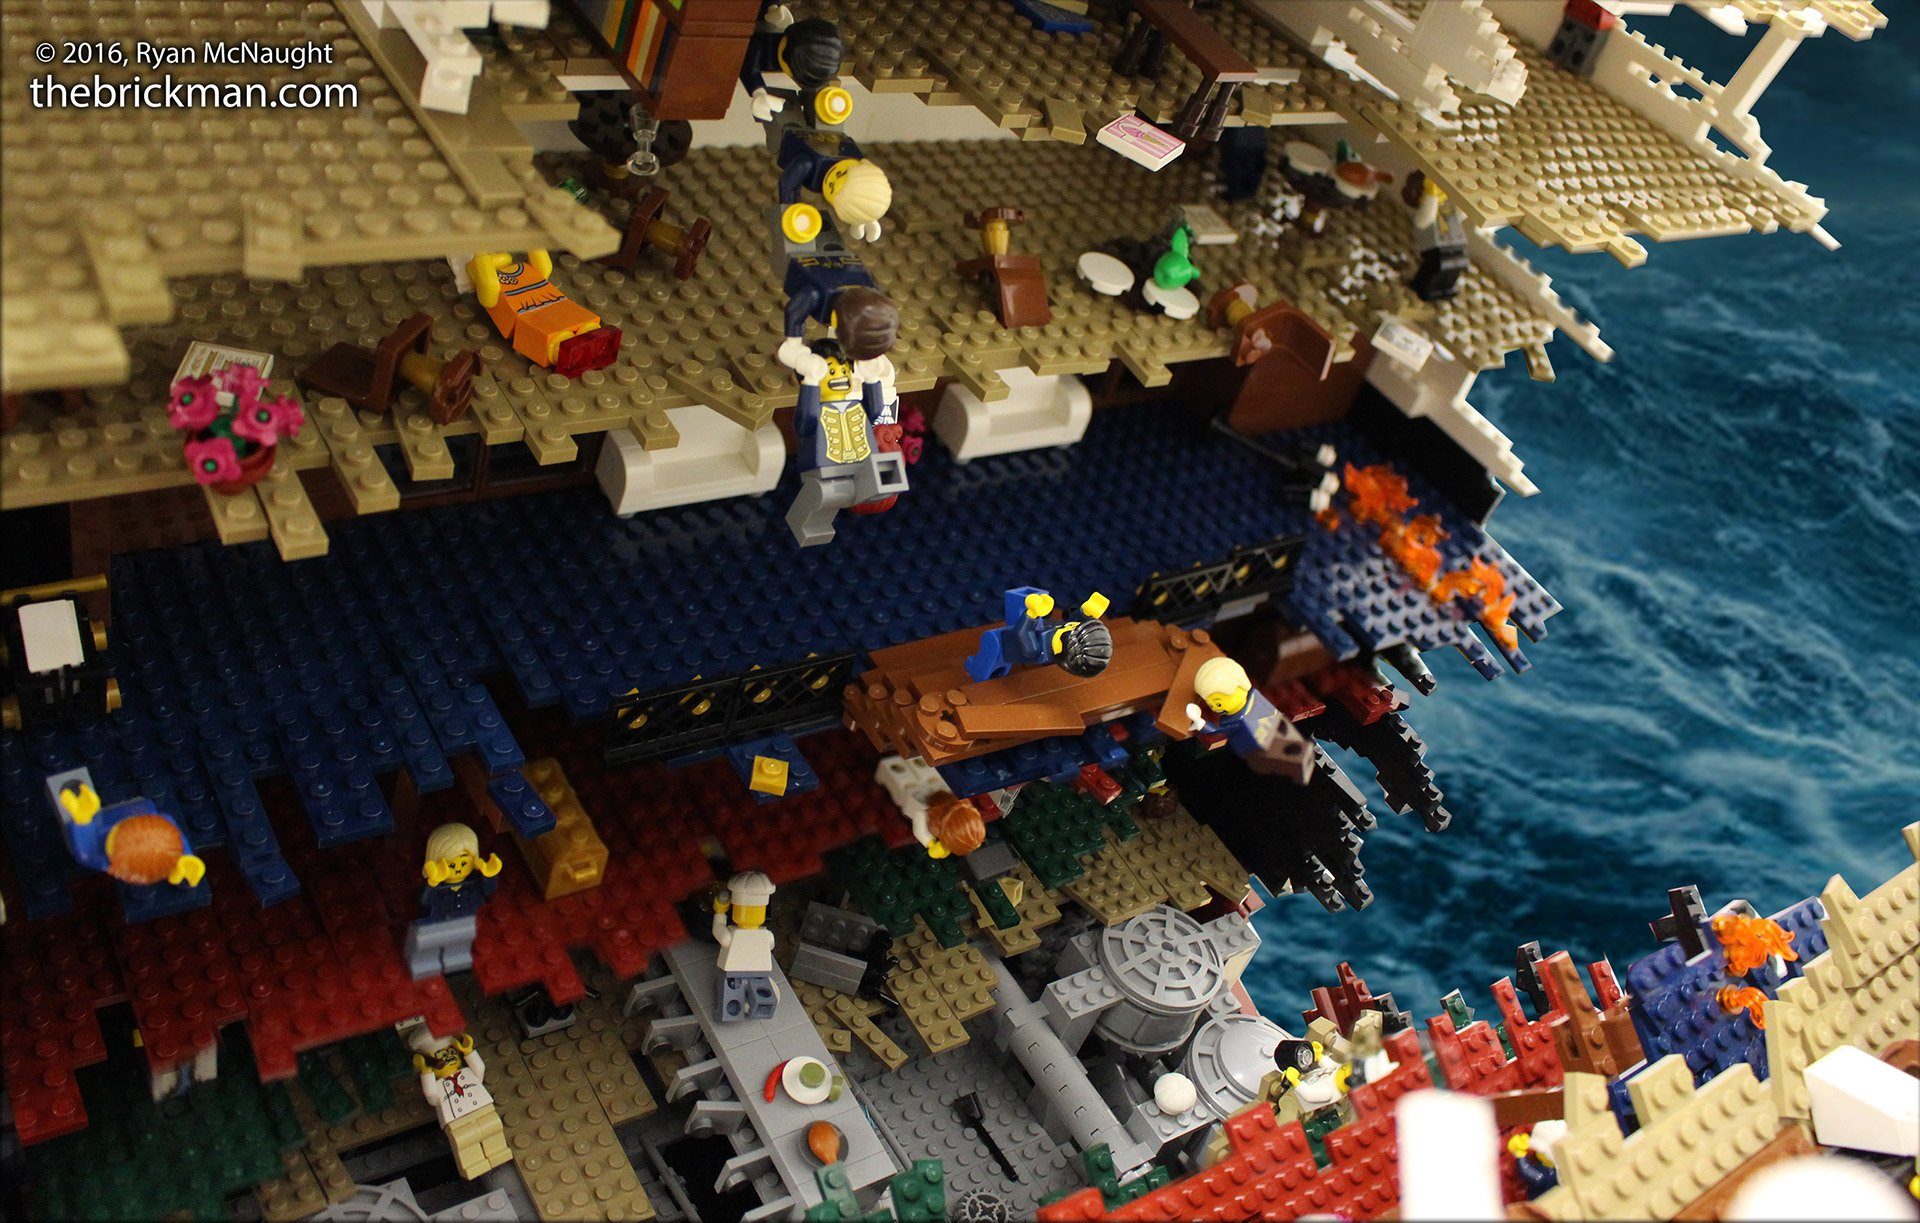 Titanic Disaster Model in LEGO: I'm the Minifig of the World! - Technabob